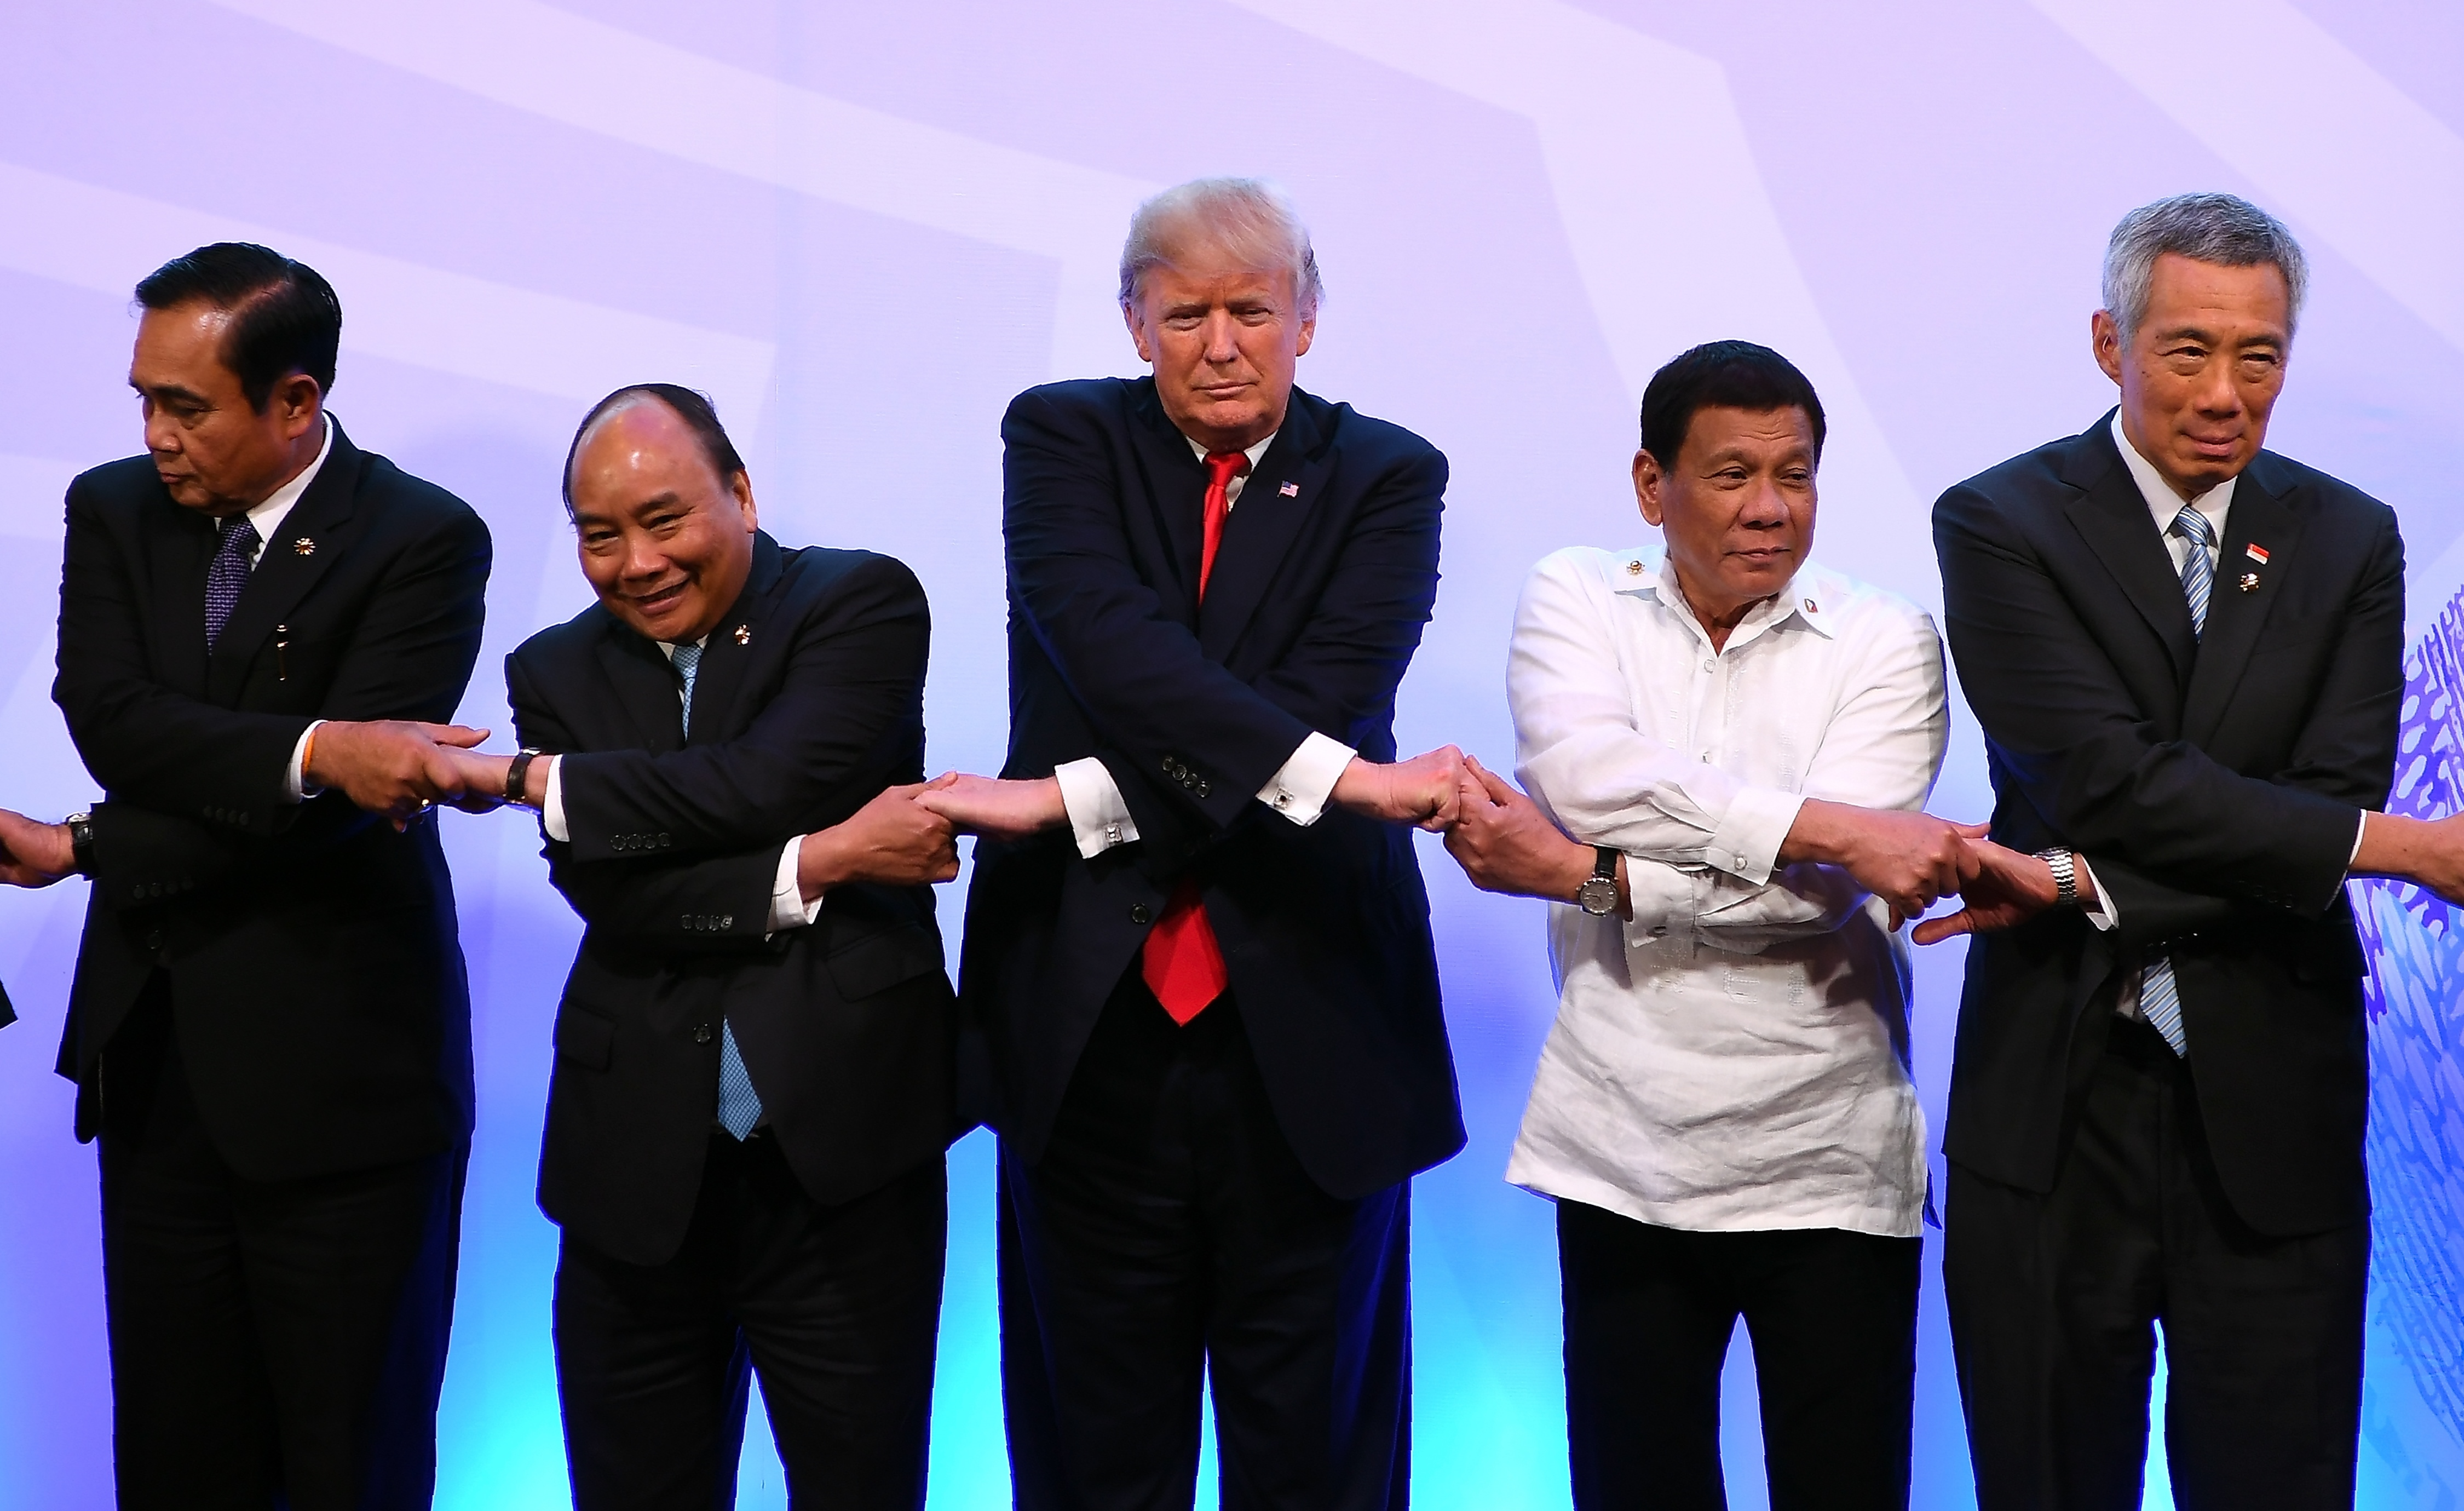 World leaders pose for a photo during the ASEAN-US 40th Anniversary commemorative Summit in Manila on November 13, 2017.